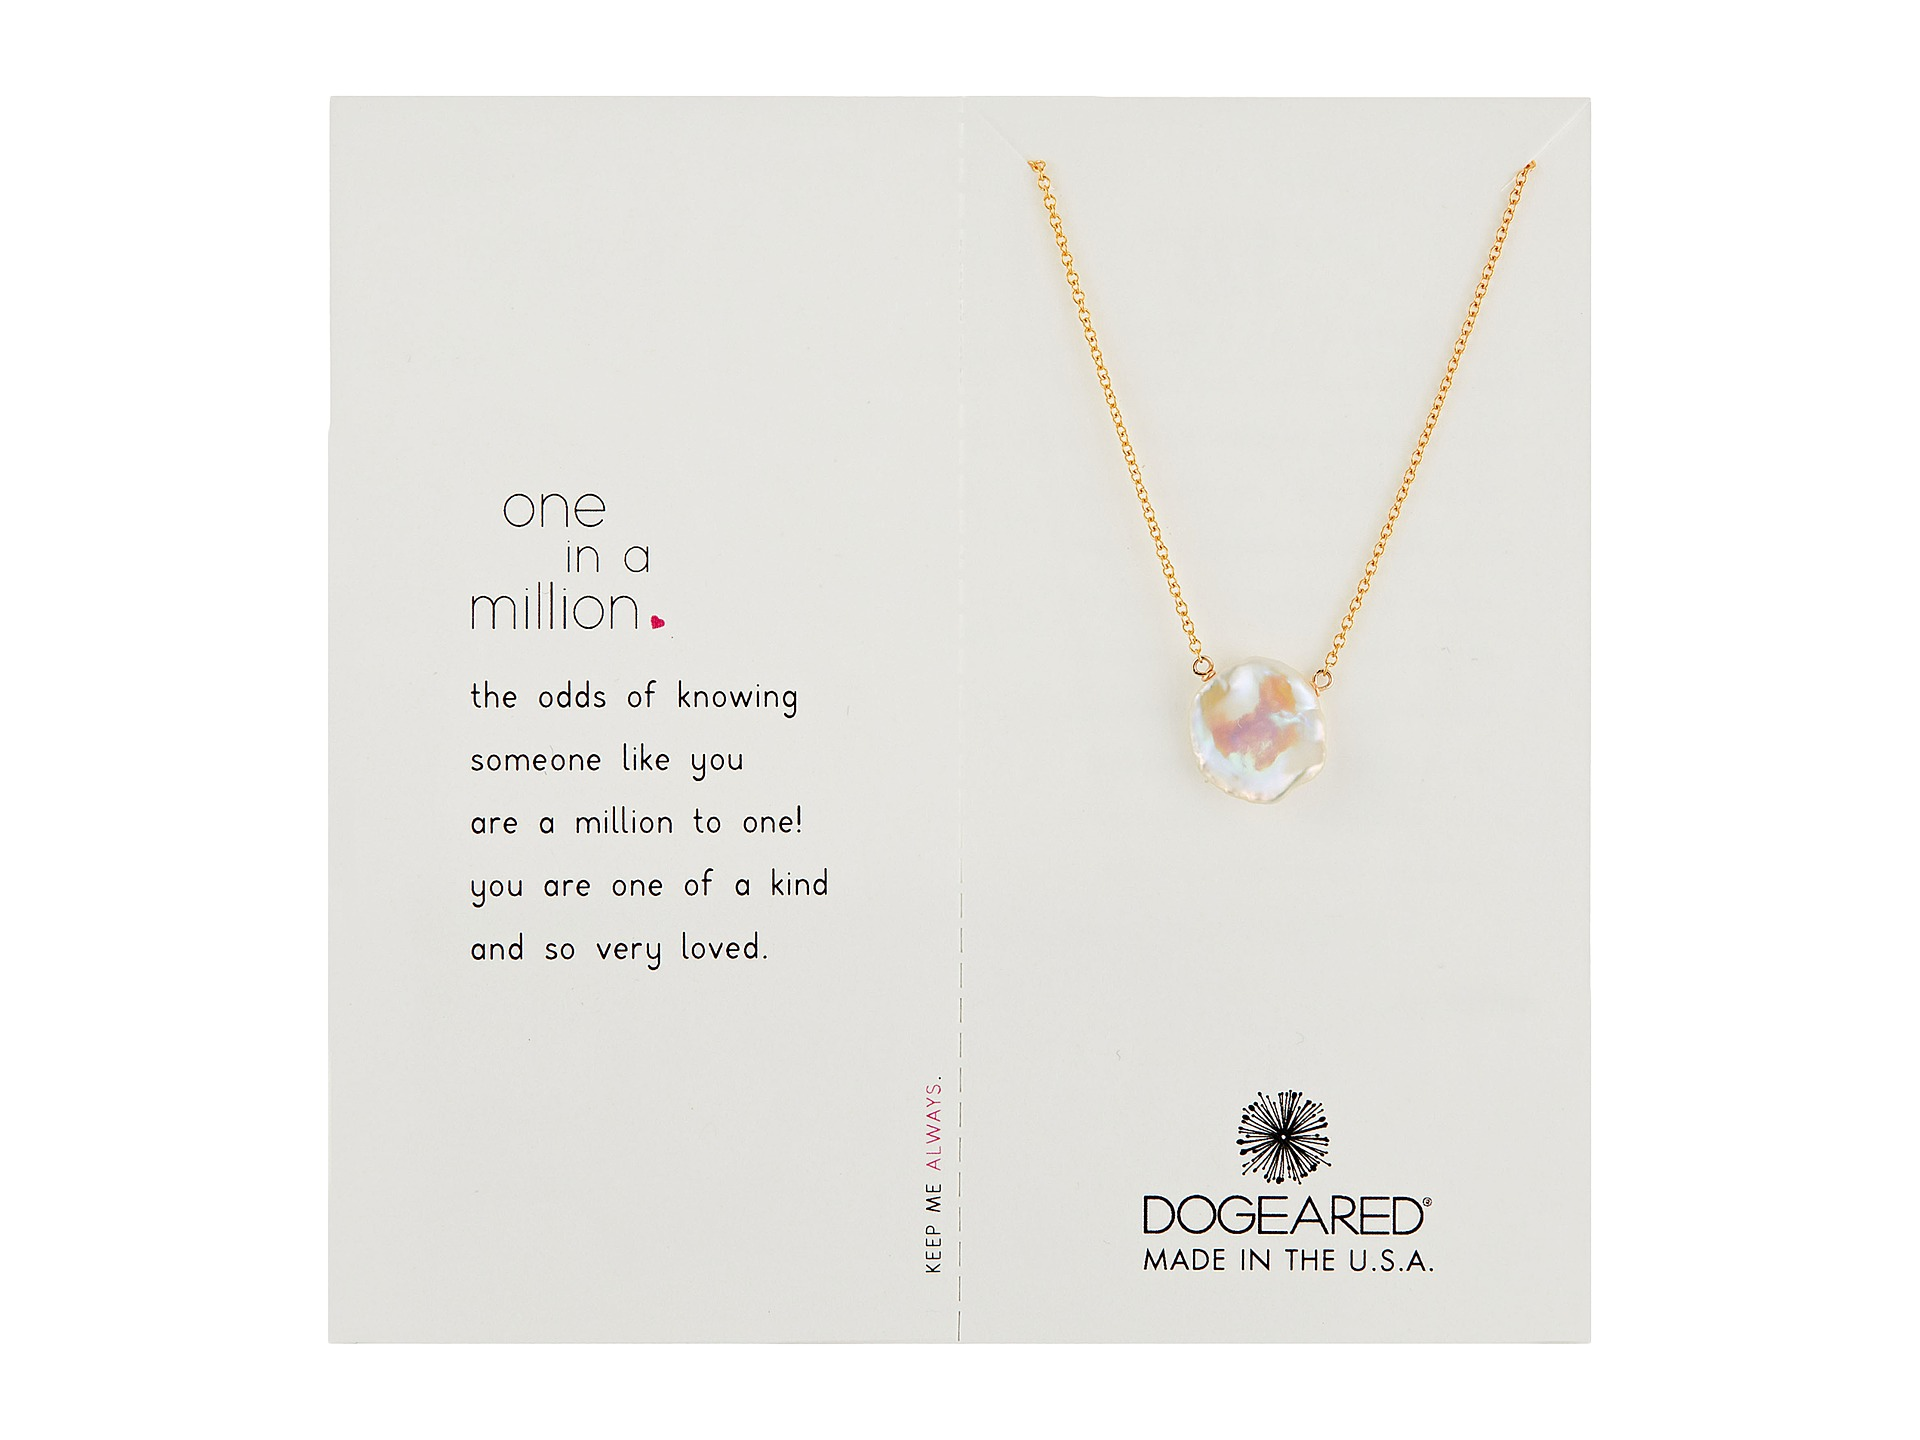 dogeared one in a million necklace at zappos